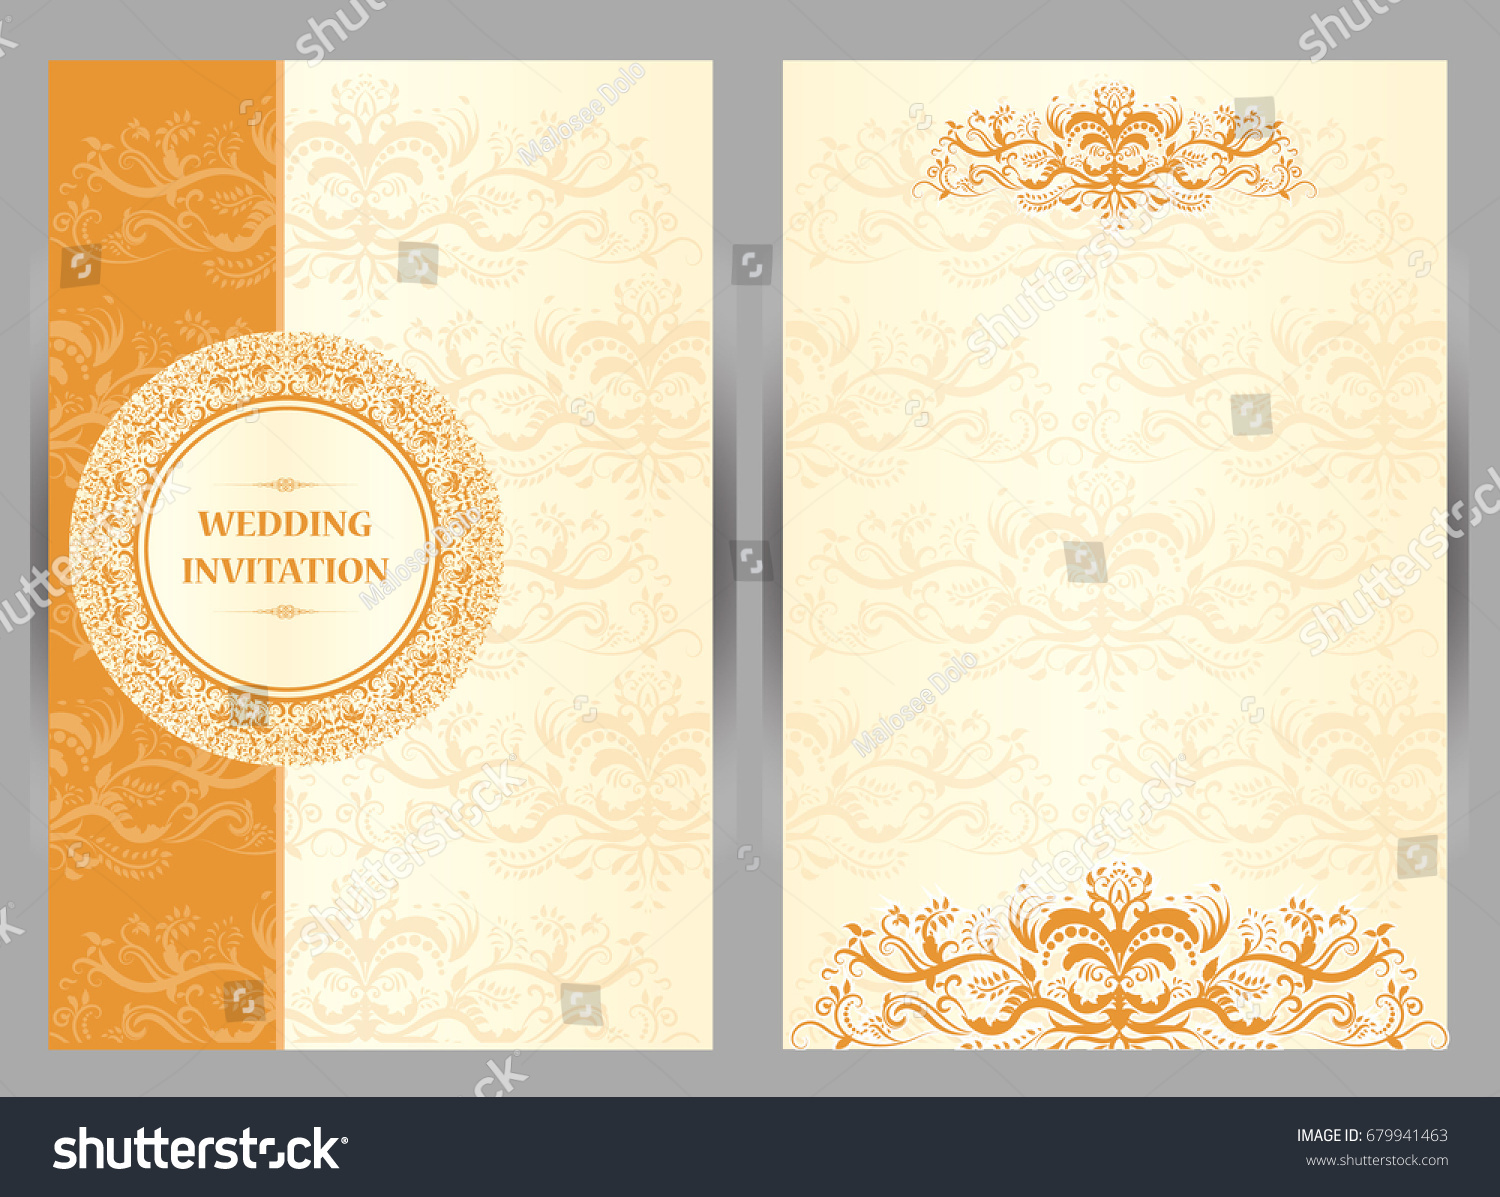 https www shutterstock com image vector wedding invitation card abstract background islam 679941463